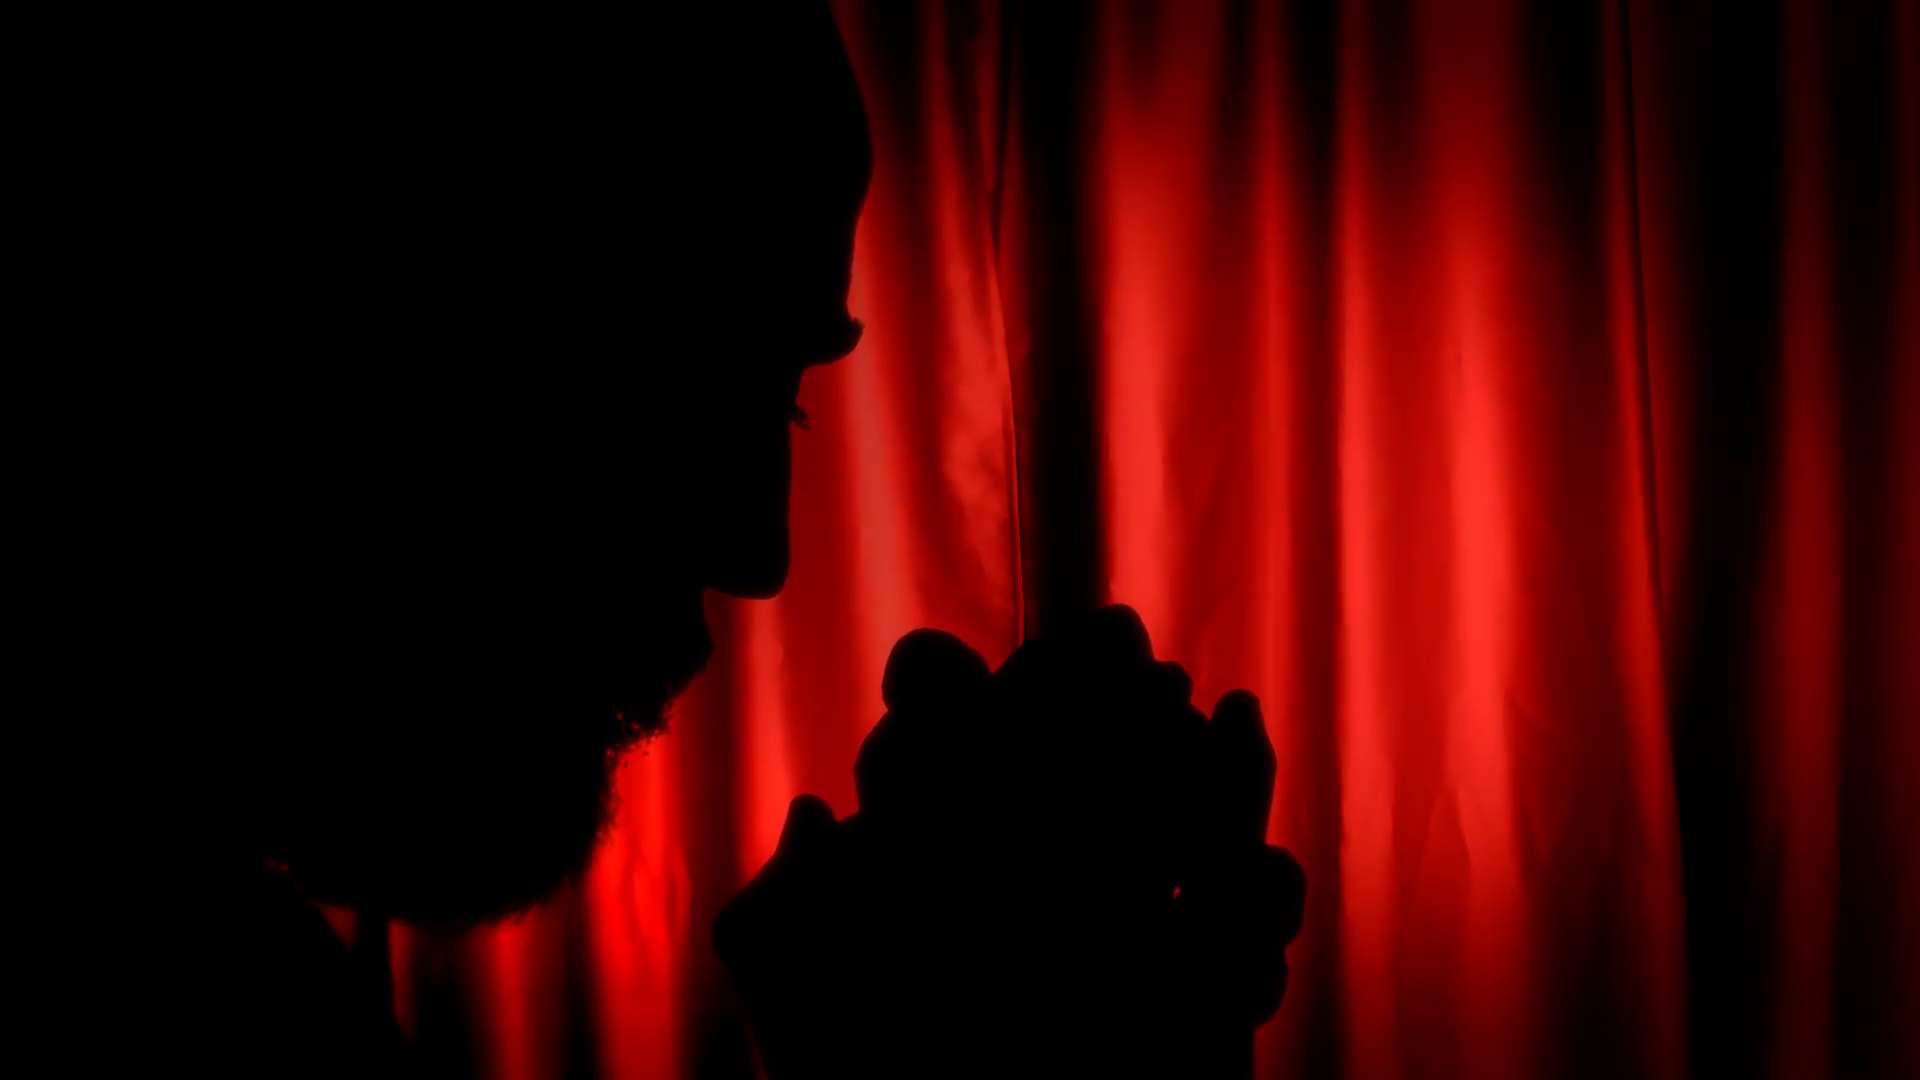 1920x1080 Silhouette man praying red curtain. A man praying God with a